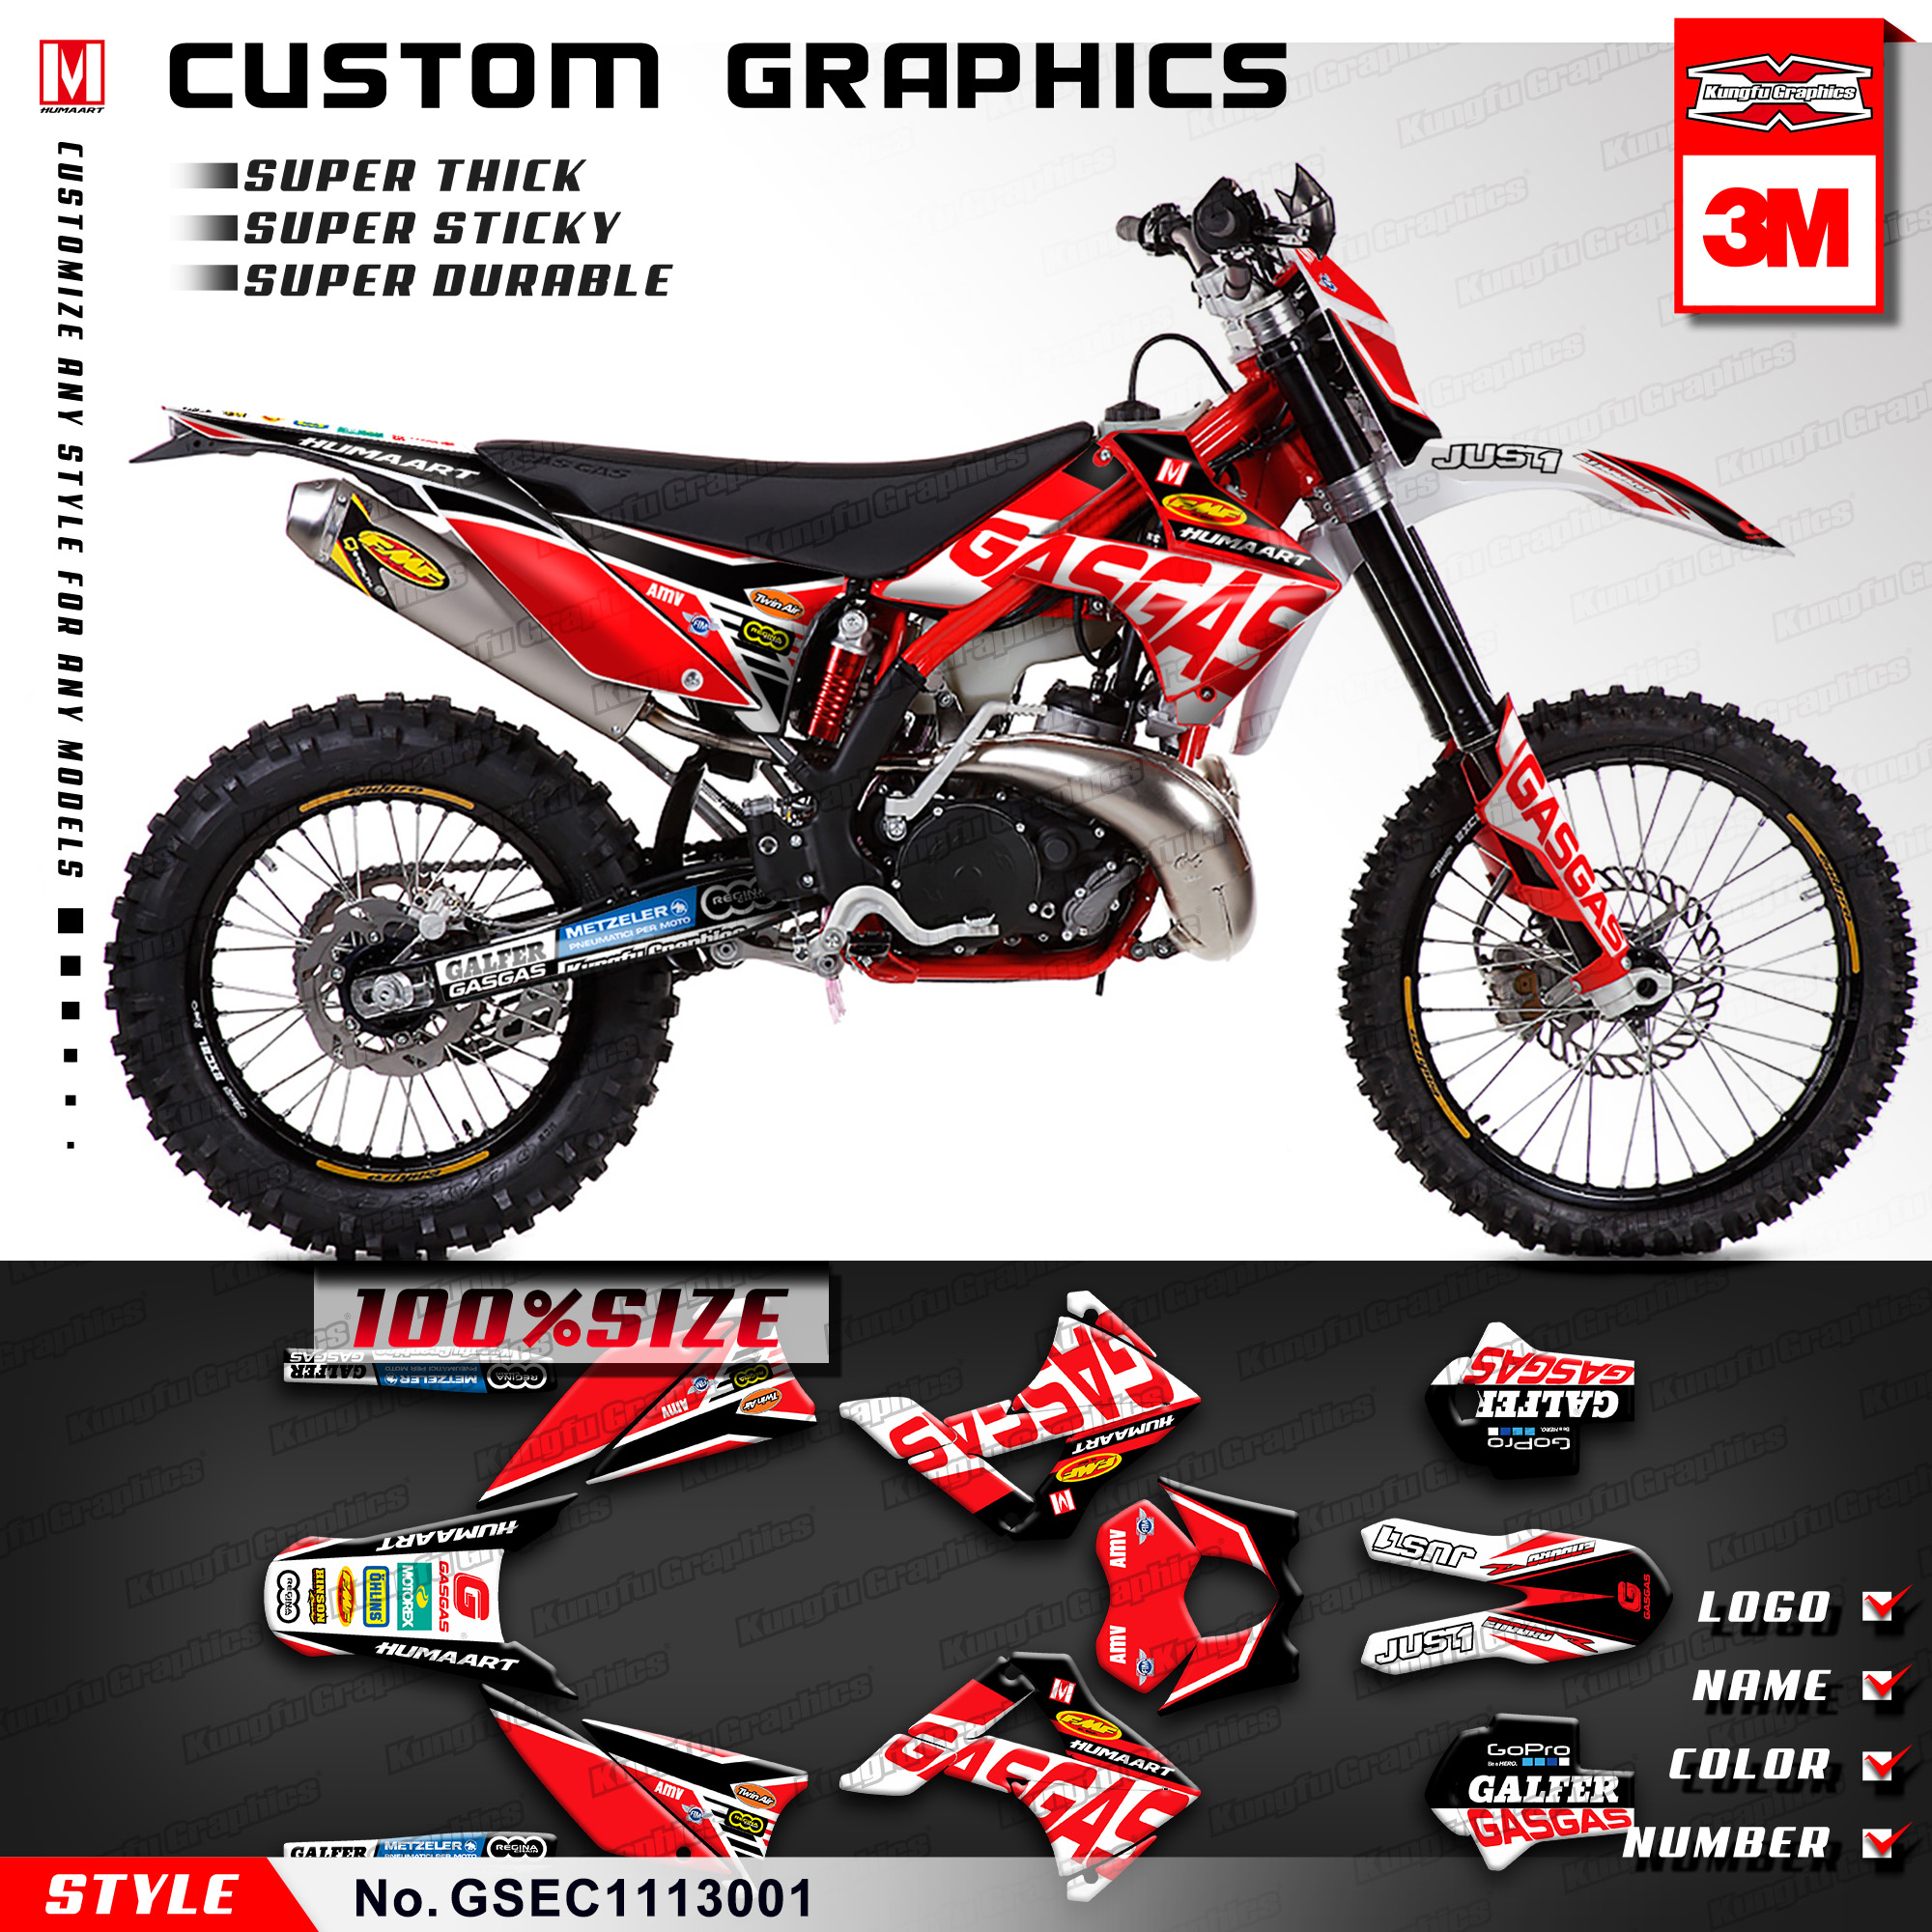 Us 129 89 Kungfu Graphics Mx Stickers Decals Kit For Gas Gas Ec 125 200 250 300 2t 450 4t Six Days 2011 2012 2013 Style No Gsec1113001 In Decals